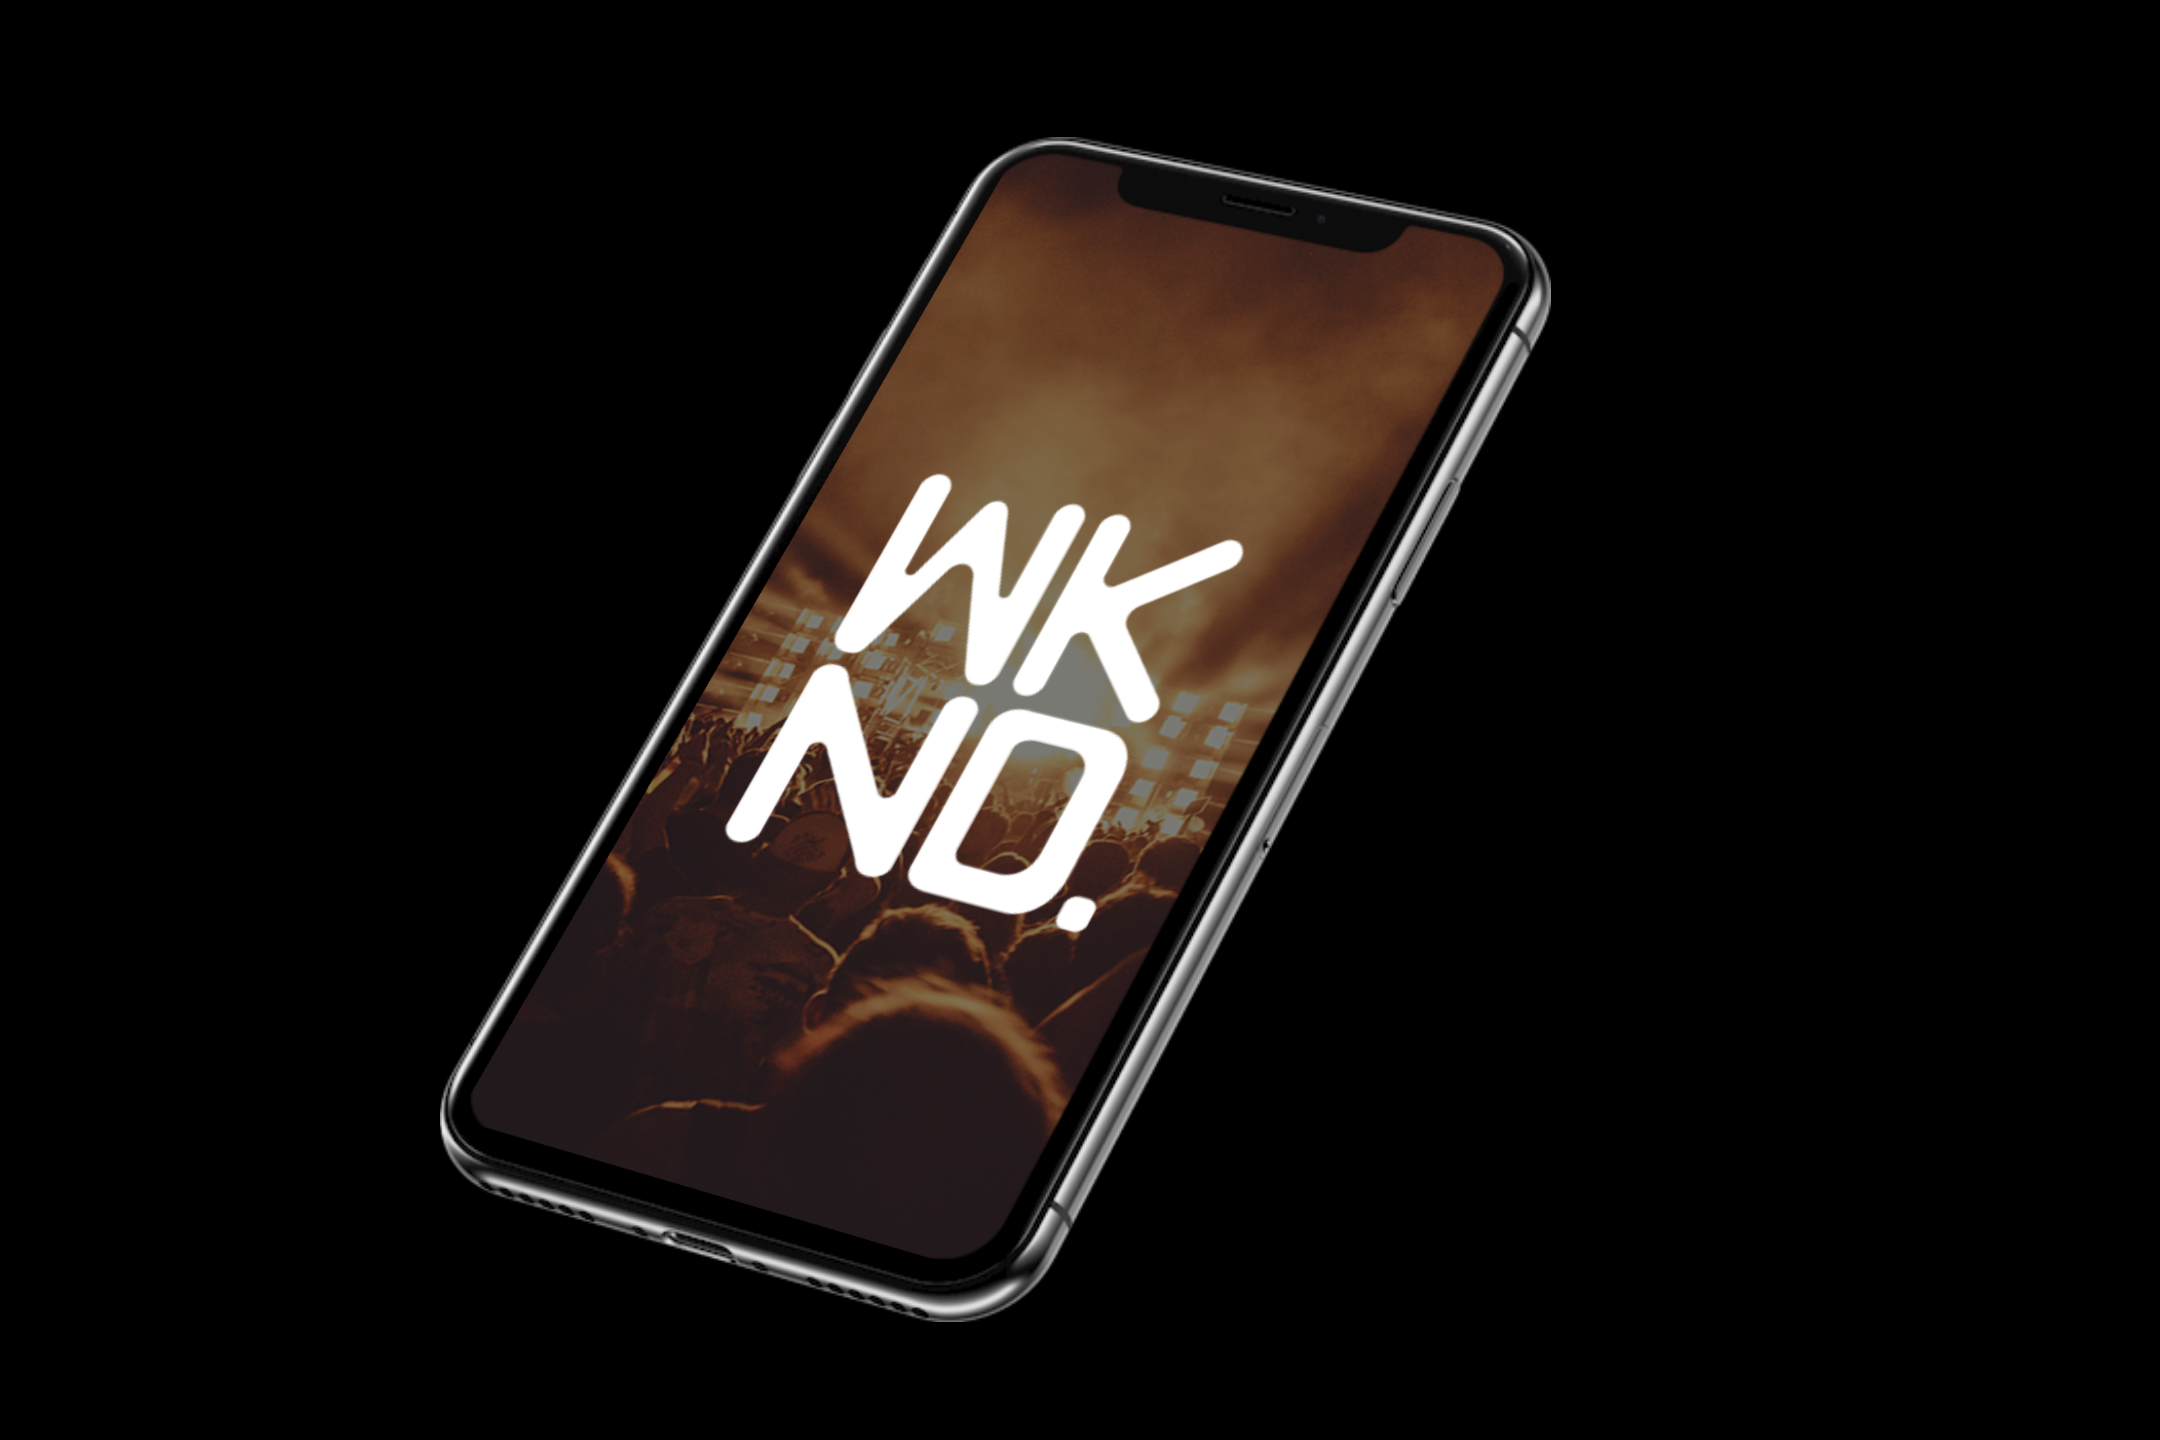 wknd splash screen phone mockup